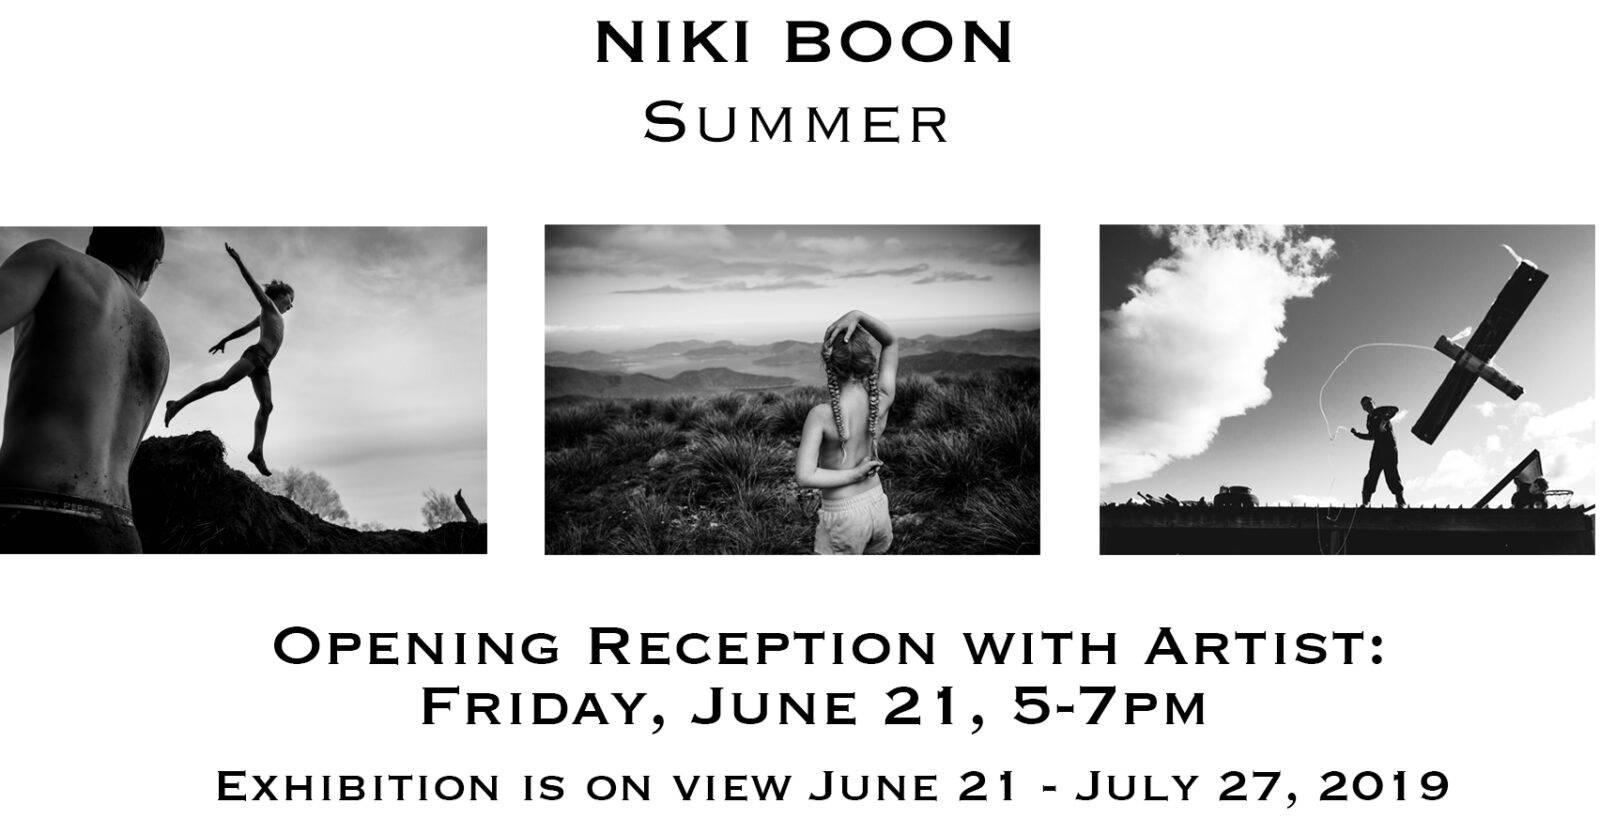 this is the exhibition invitation that includes dates and images by Niki Boon